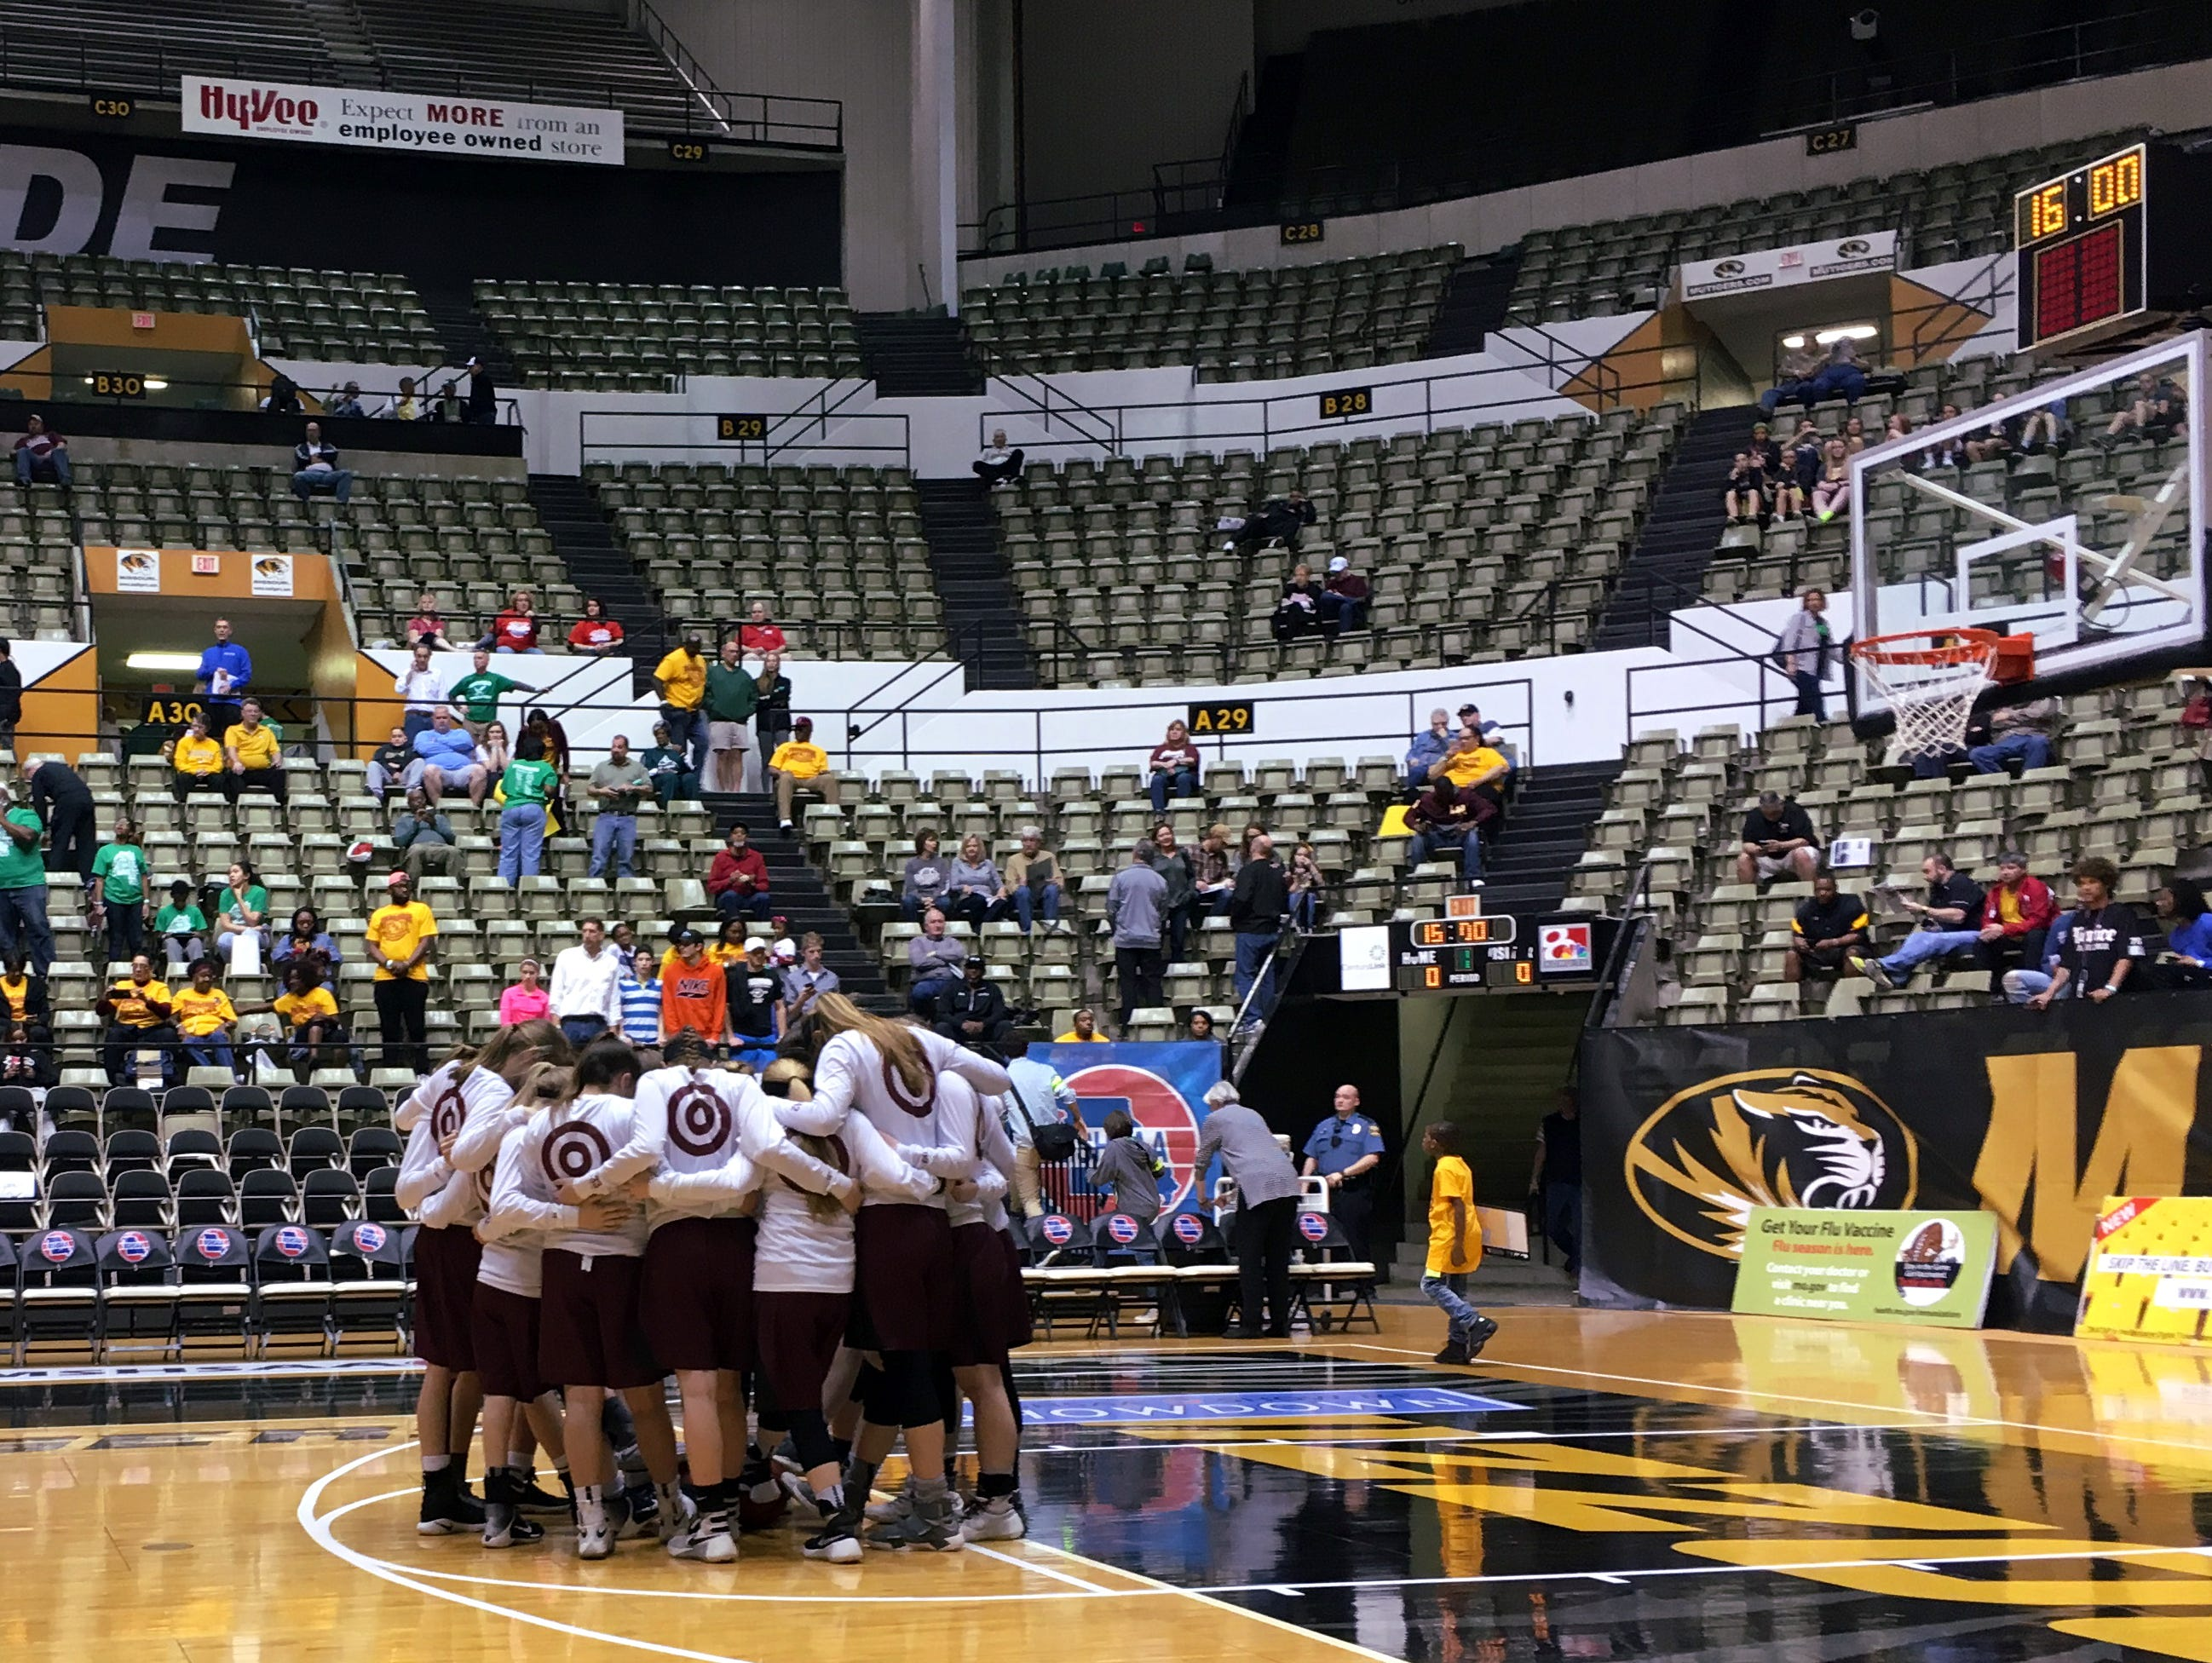 The Strafford High School girls basketball team huddles together moments before a 2017 Class 3 playoff semifinal game against Lutheran North at the Hearnes Center in Columbia.